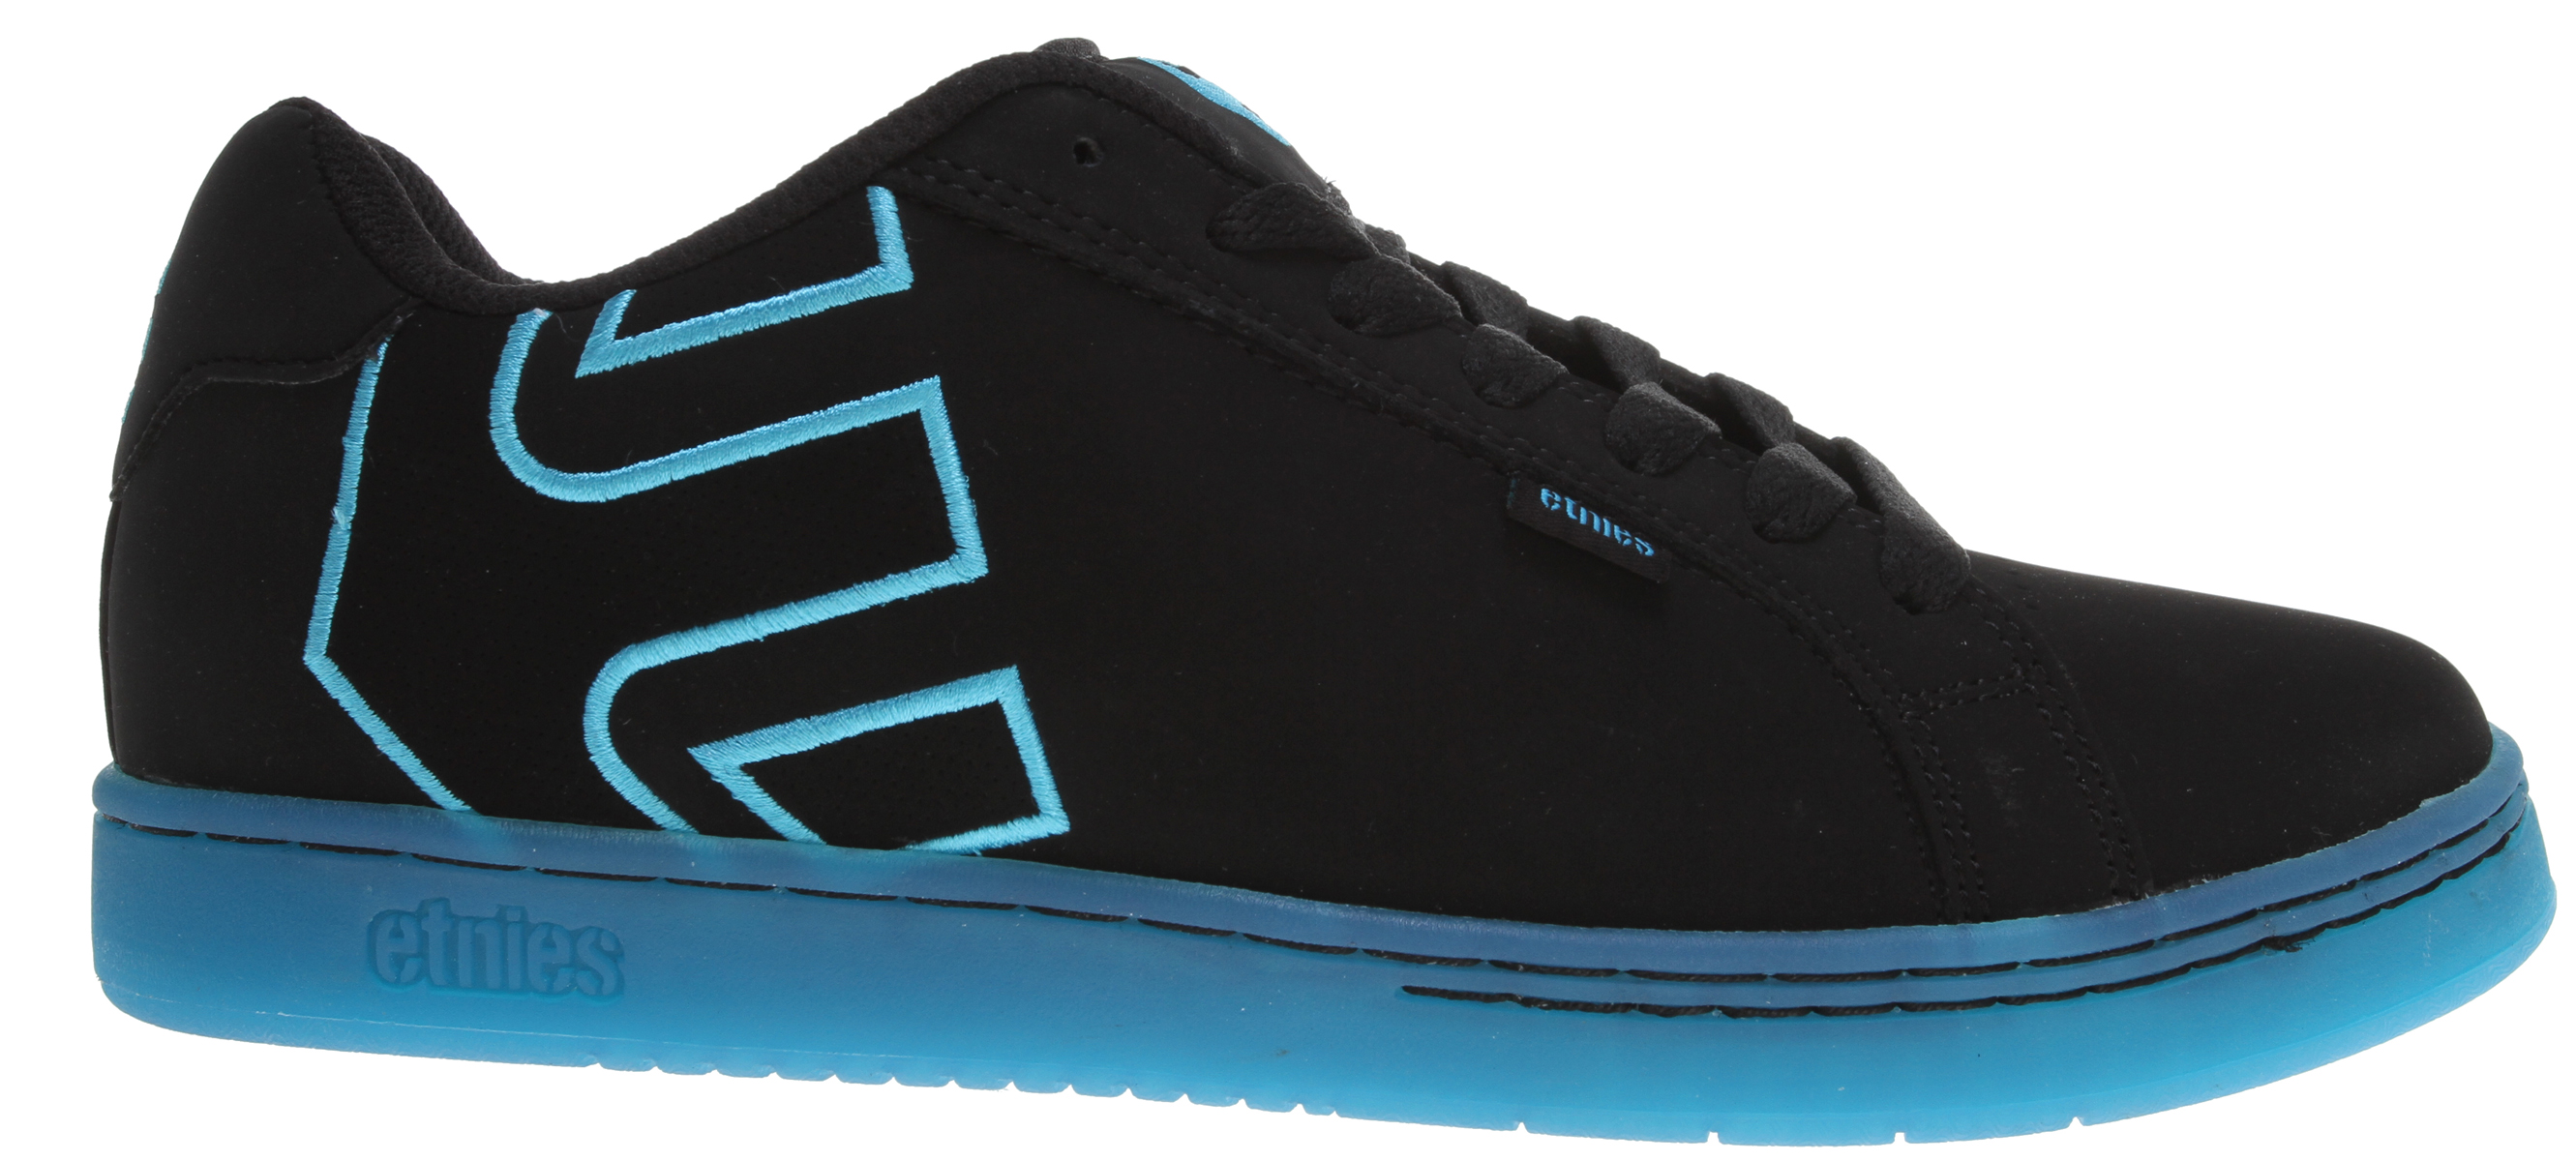 Skateboard Key Features of the Etnies Fader Skate Shoes: Trademark etnies Arrow logo integrated into heel area Elastic tongue-centering straps Padded tongue and collar STI Foam Lite Level 1 footbed New 300 NBS rubber outsole with internal EVA midsole - $48.95